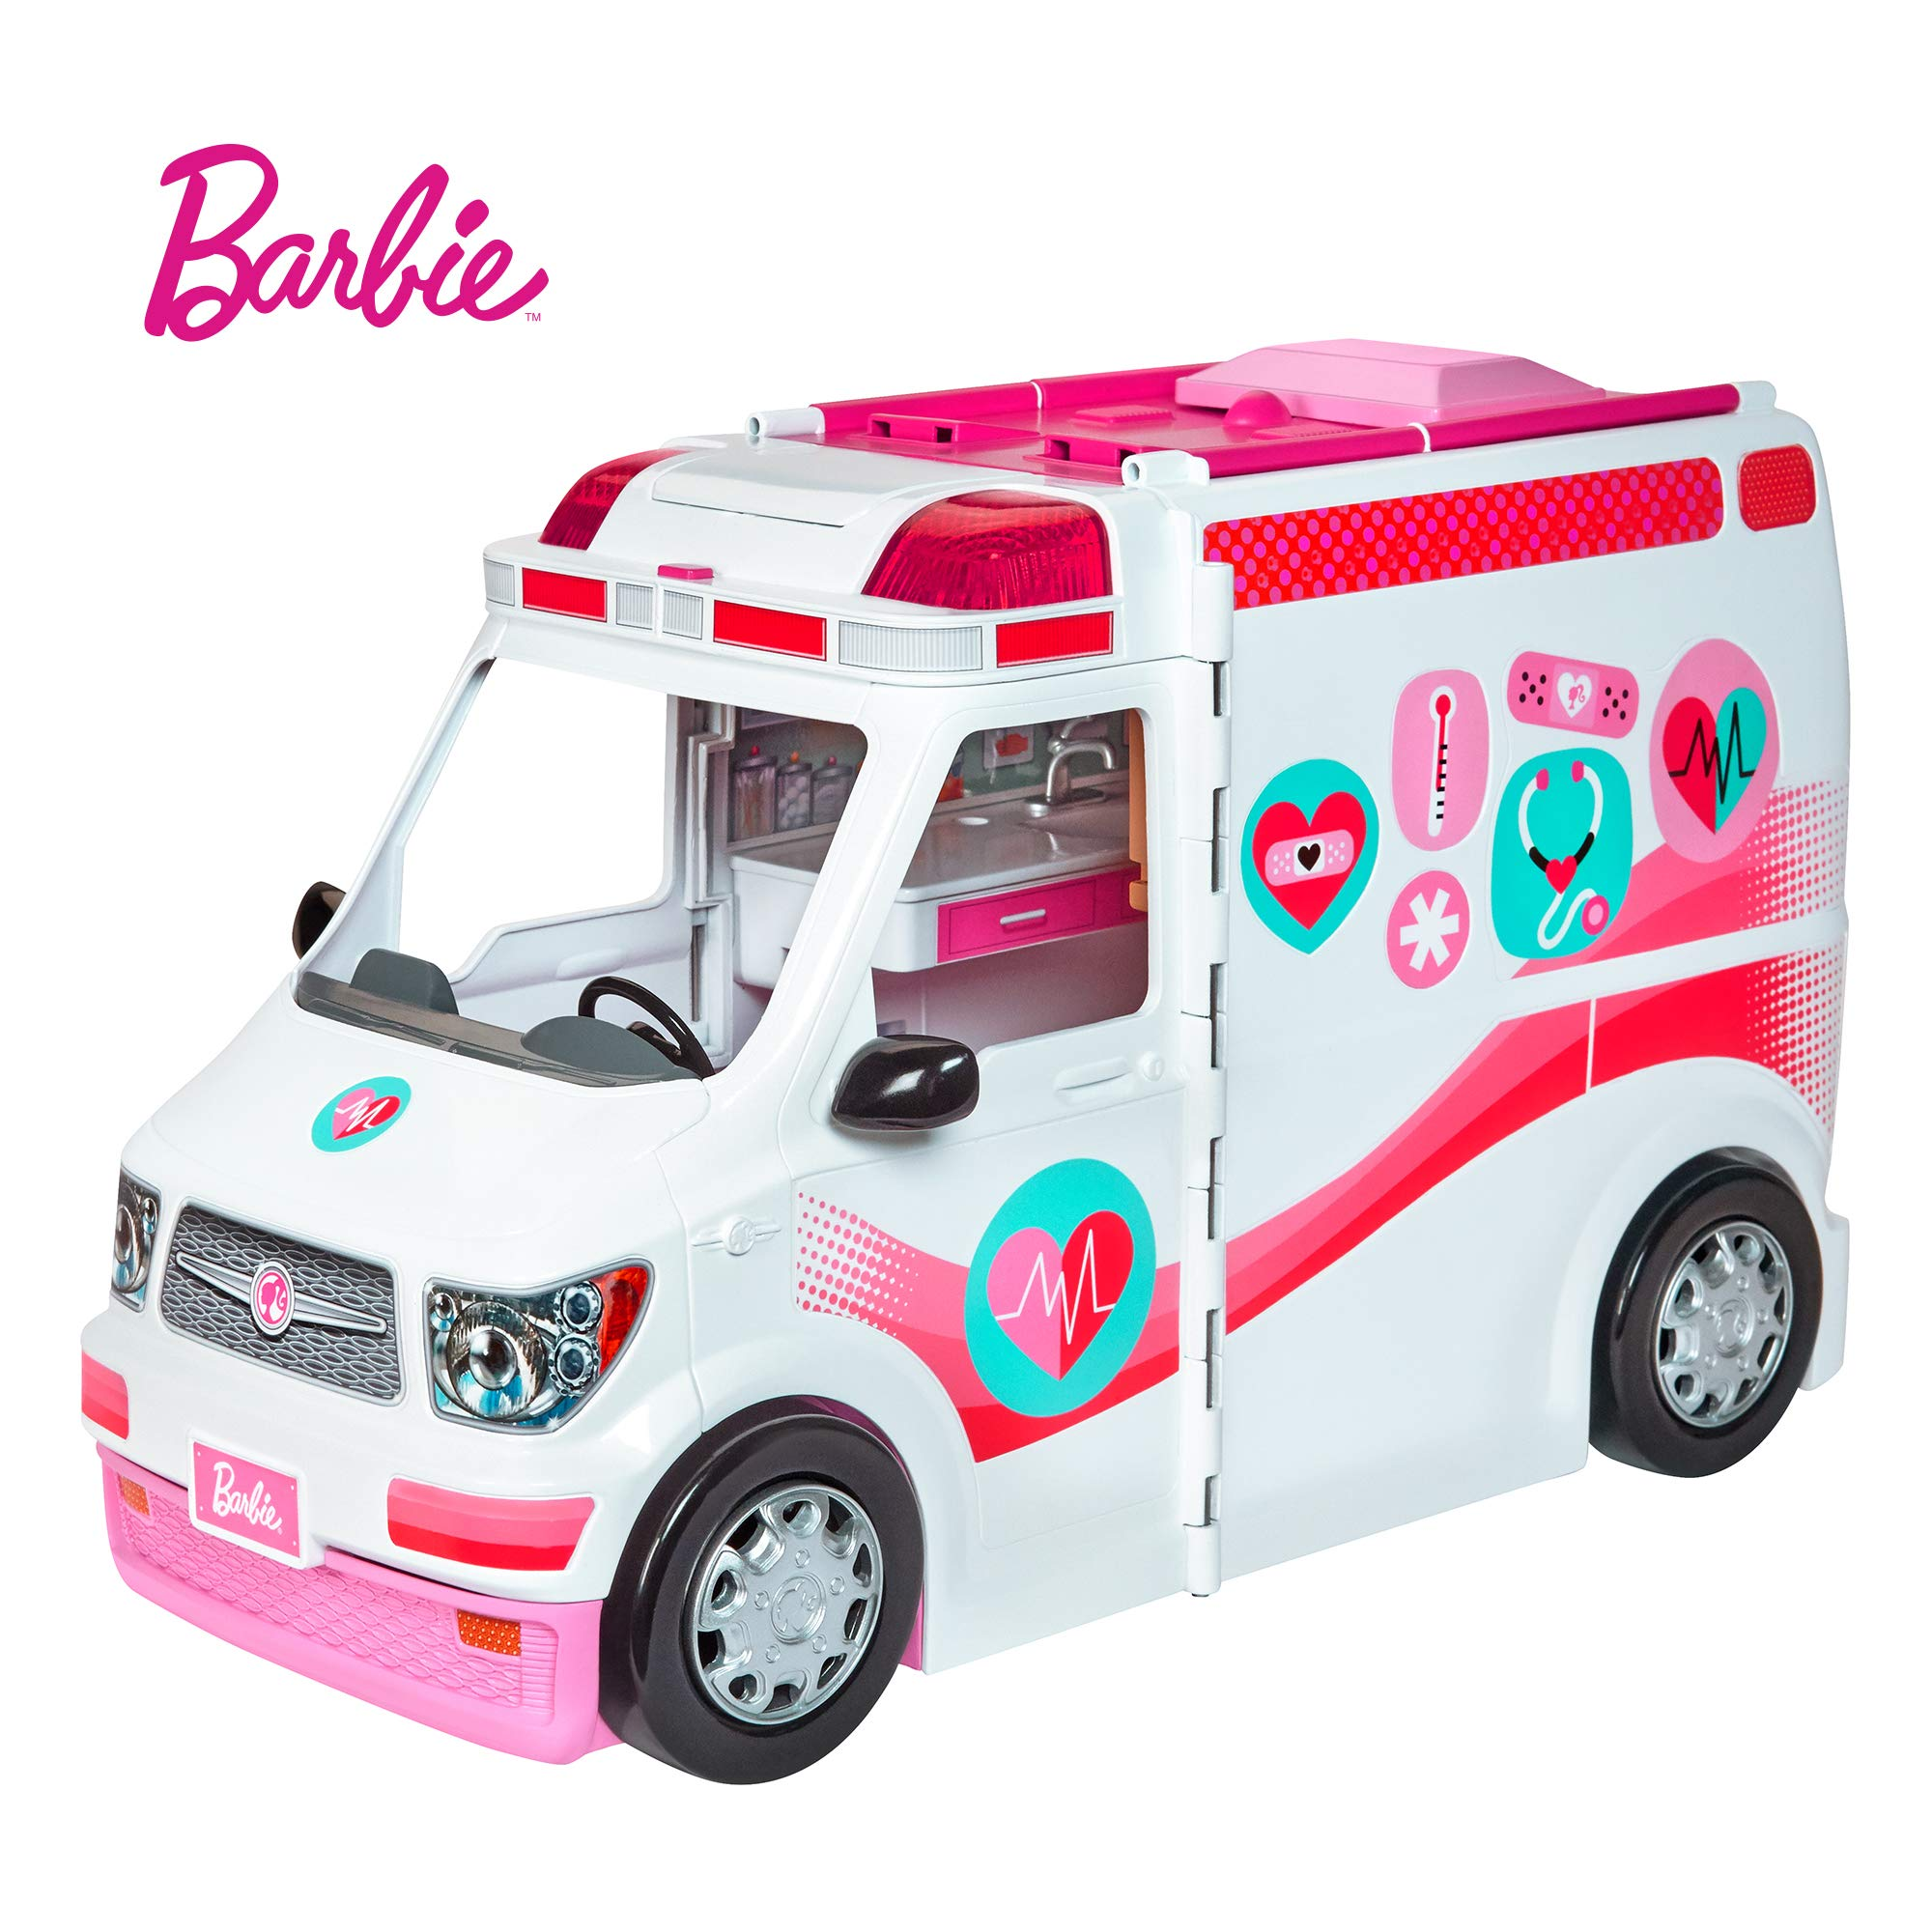 Amazon.es: Barbie Ambulancia Hospital 2 en 1, accesorios de ...